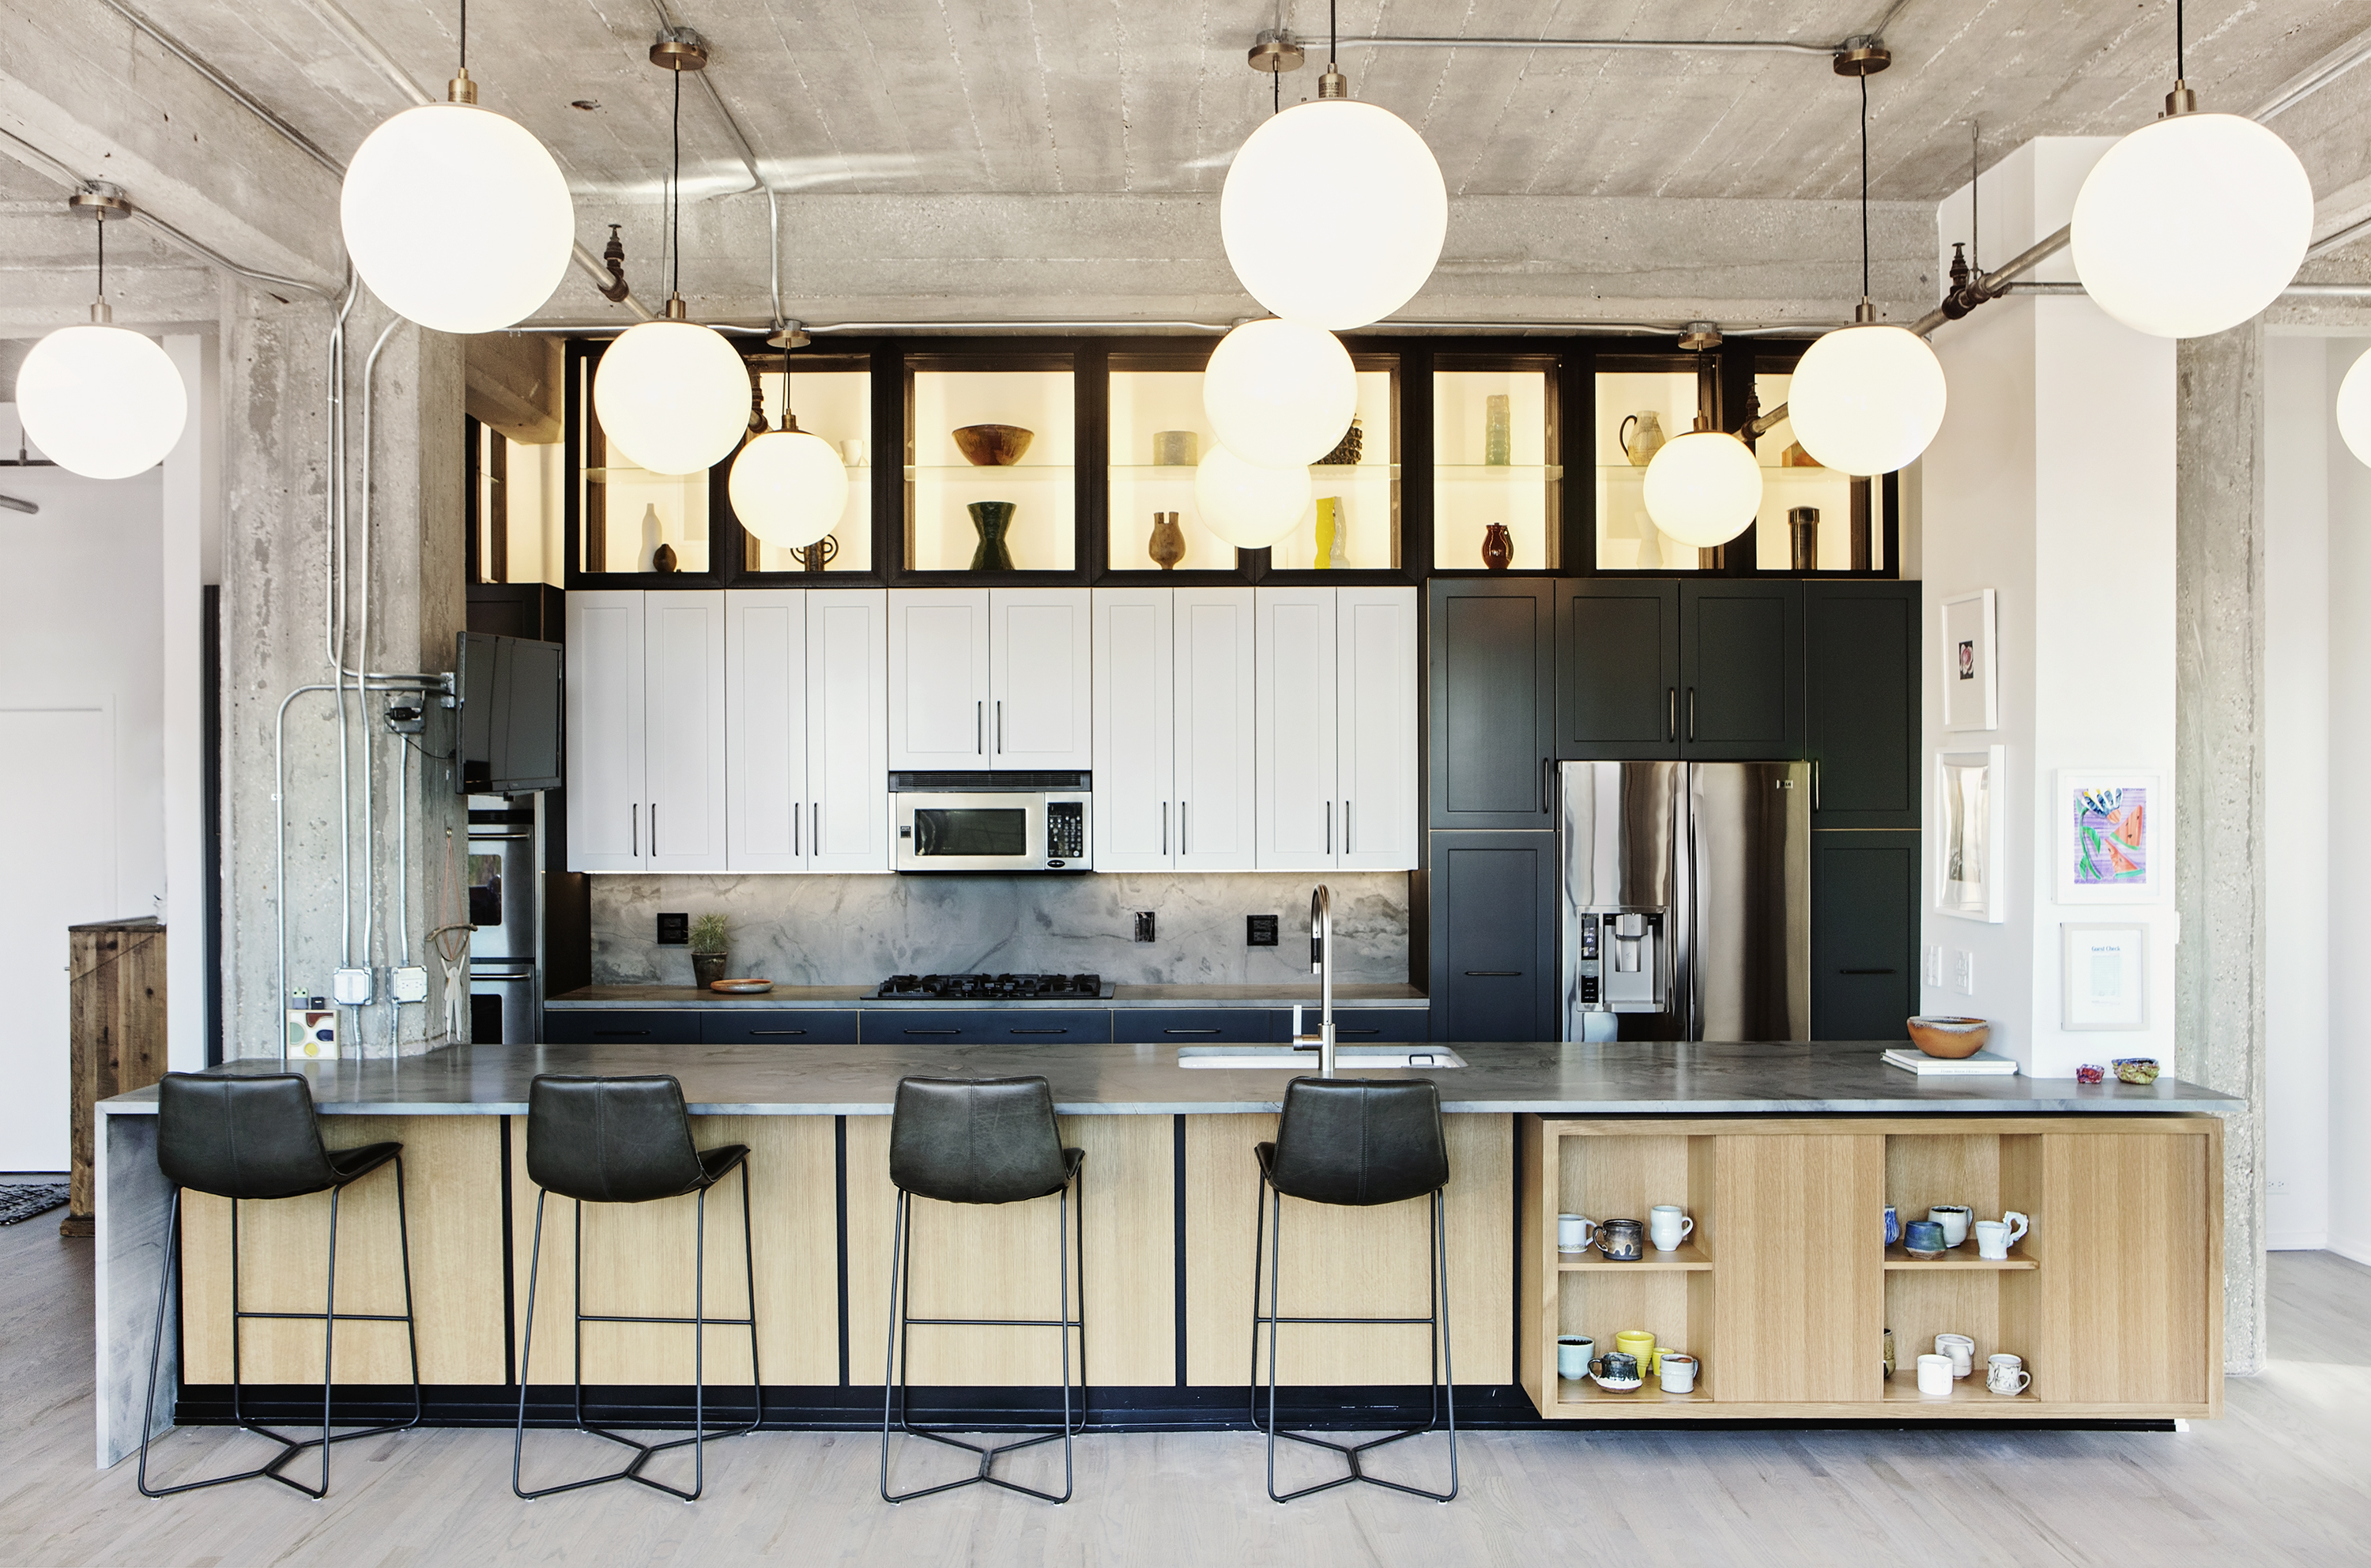 There is a kitchen island made of wood, with a wall of cabinets behind it. A high shelf above the cabinets displays a collection of objects. There is a large table with black chairs. There are many round light fixtures hanging from the ceiling.